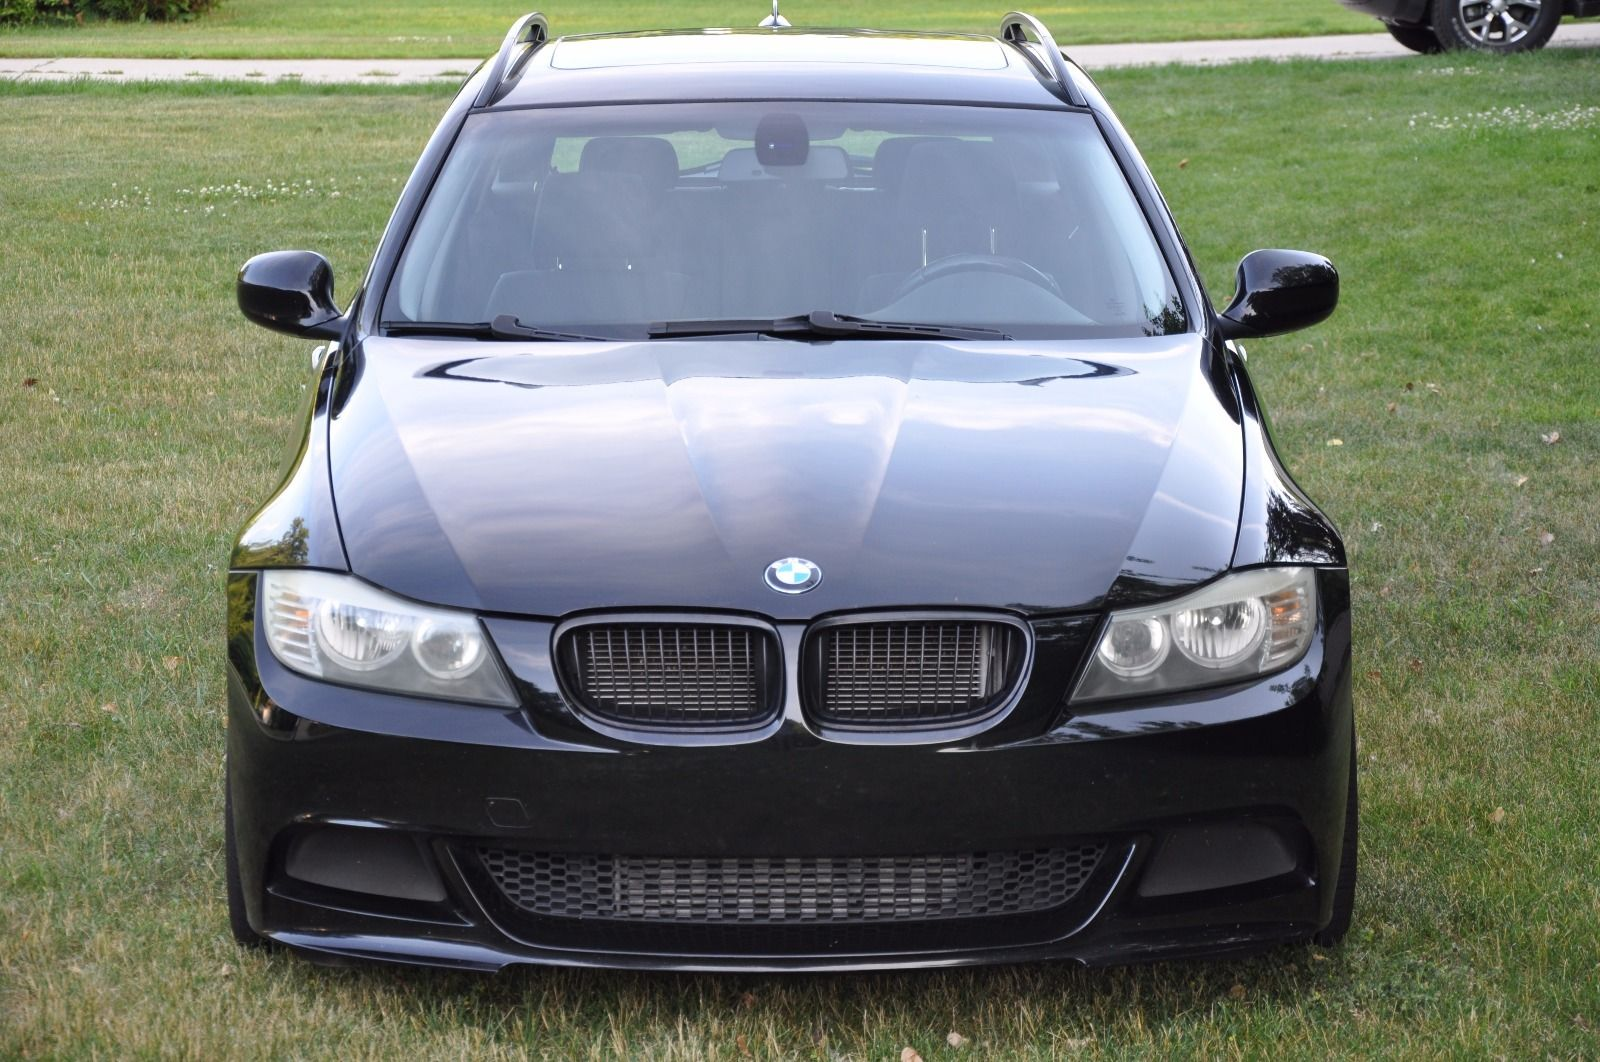 for sale bmw 328i wagon with a turbo n55. Black Bedroom Furniture Sets. Home Design Ideas